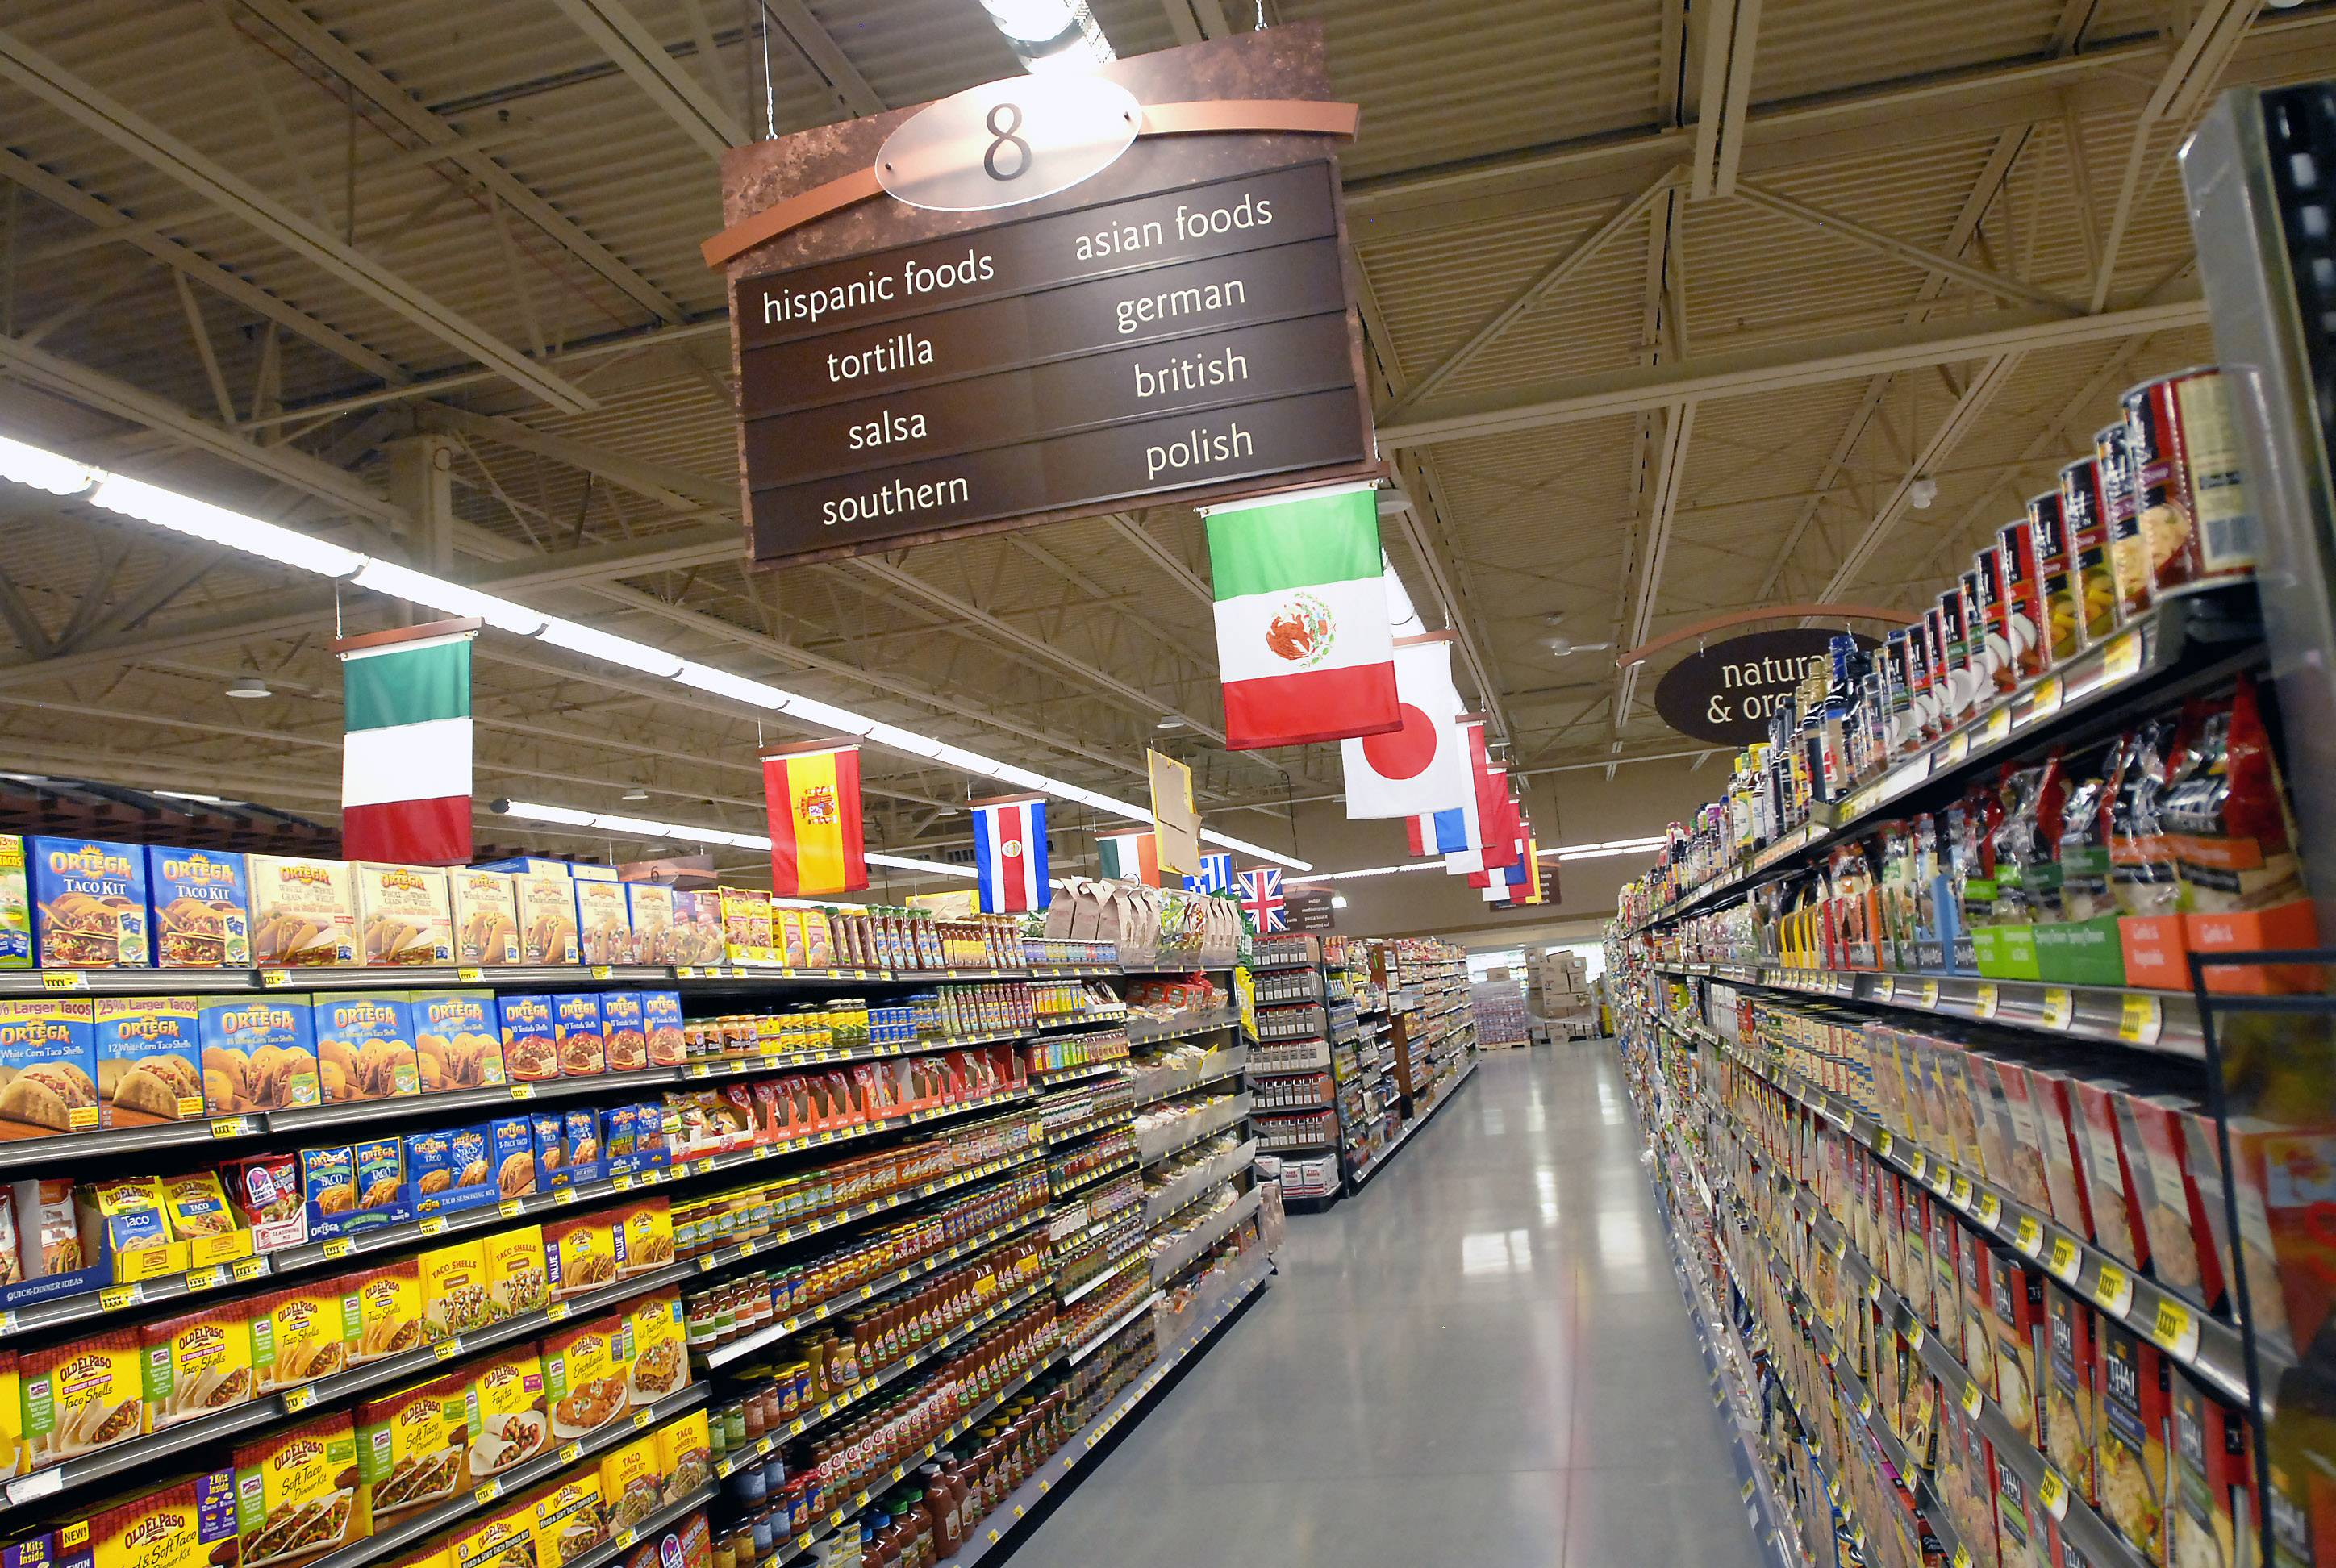 One of the international food aisles at Mariano's Fresh Market on Northwest Highway in Arlington Heights that opened in July 2010 in this file photo.